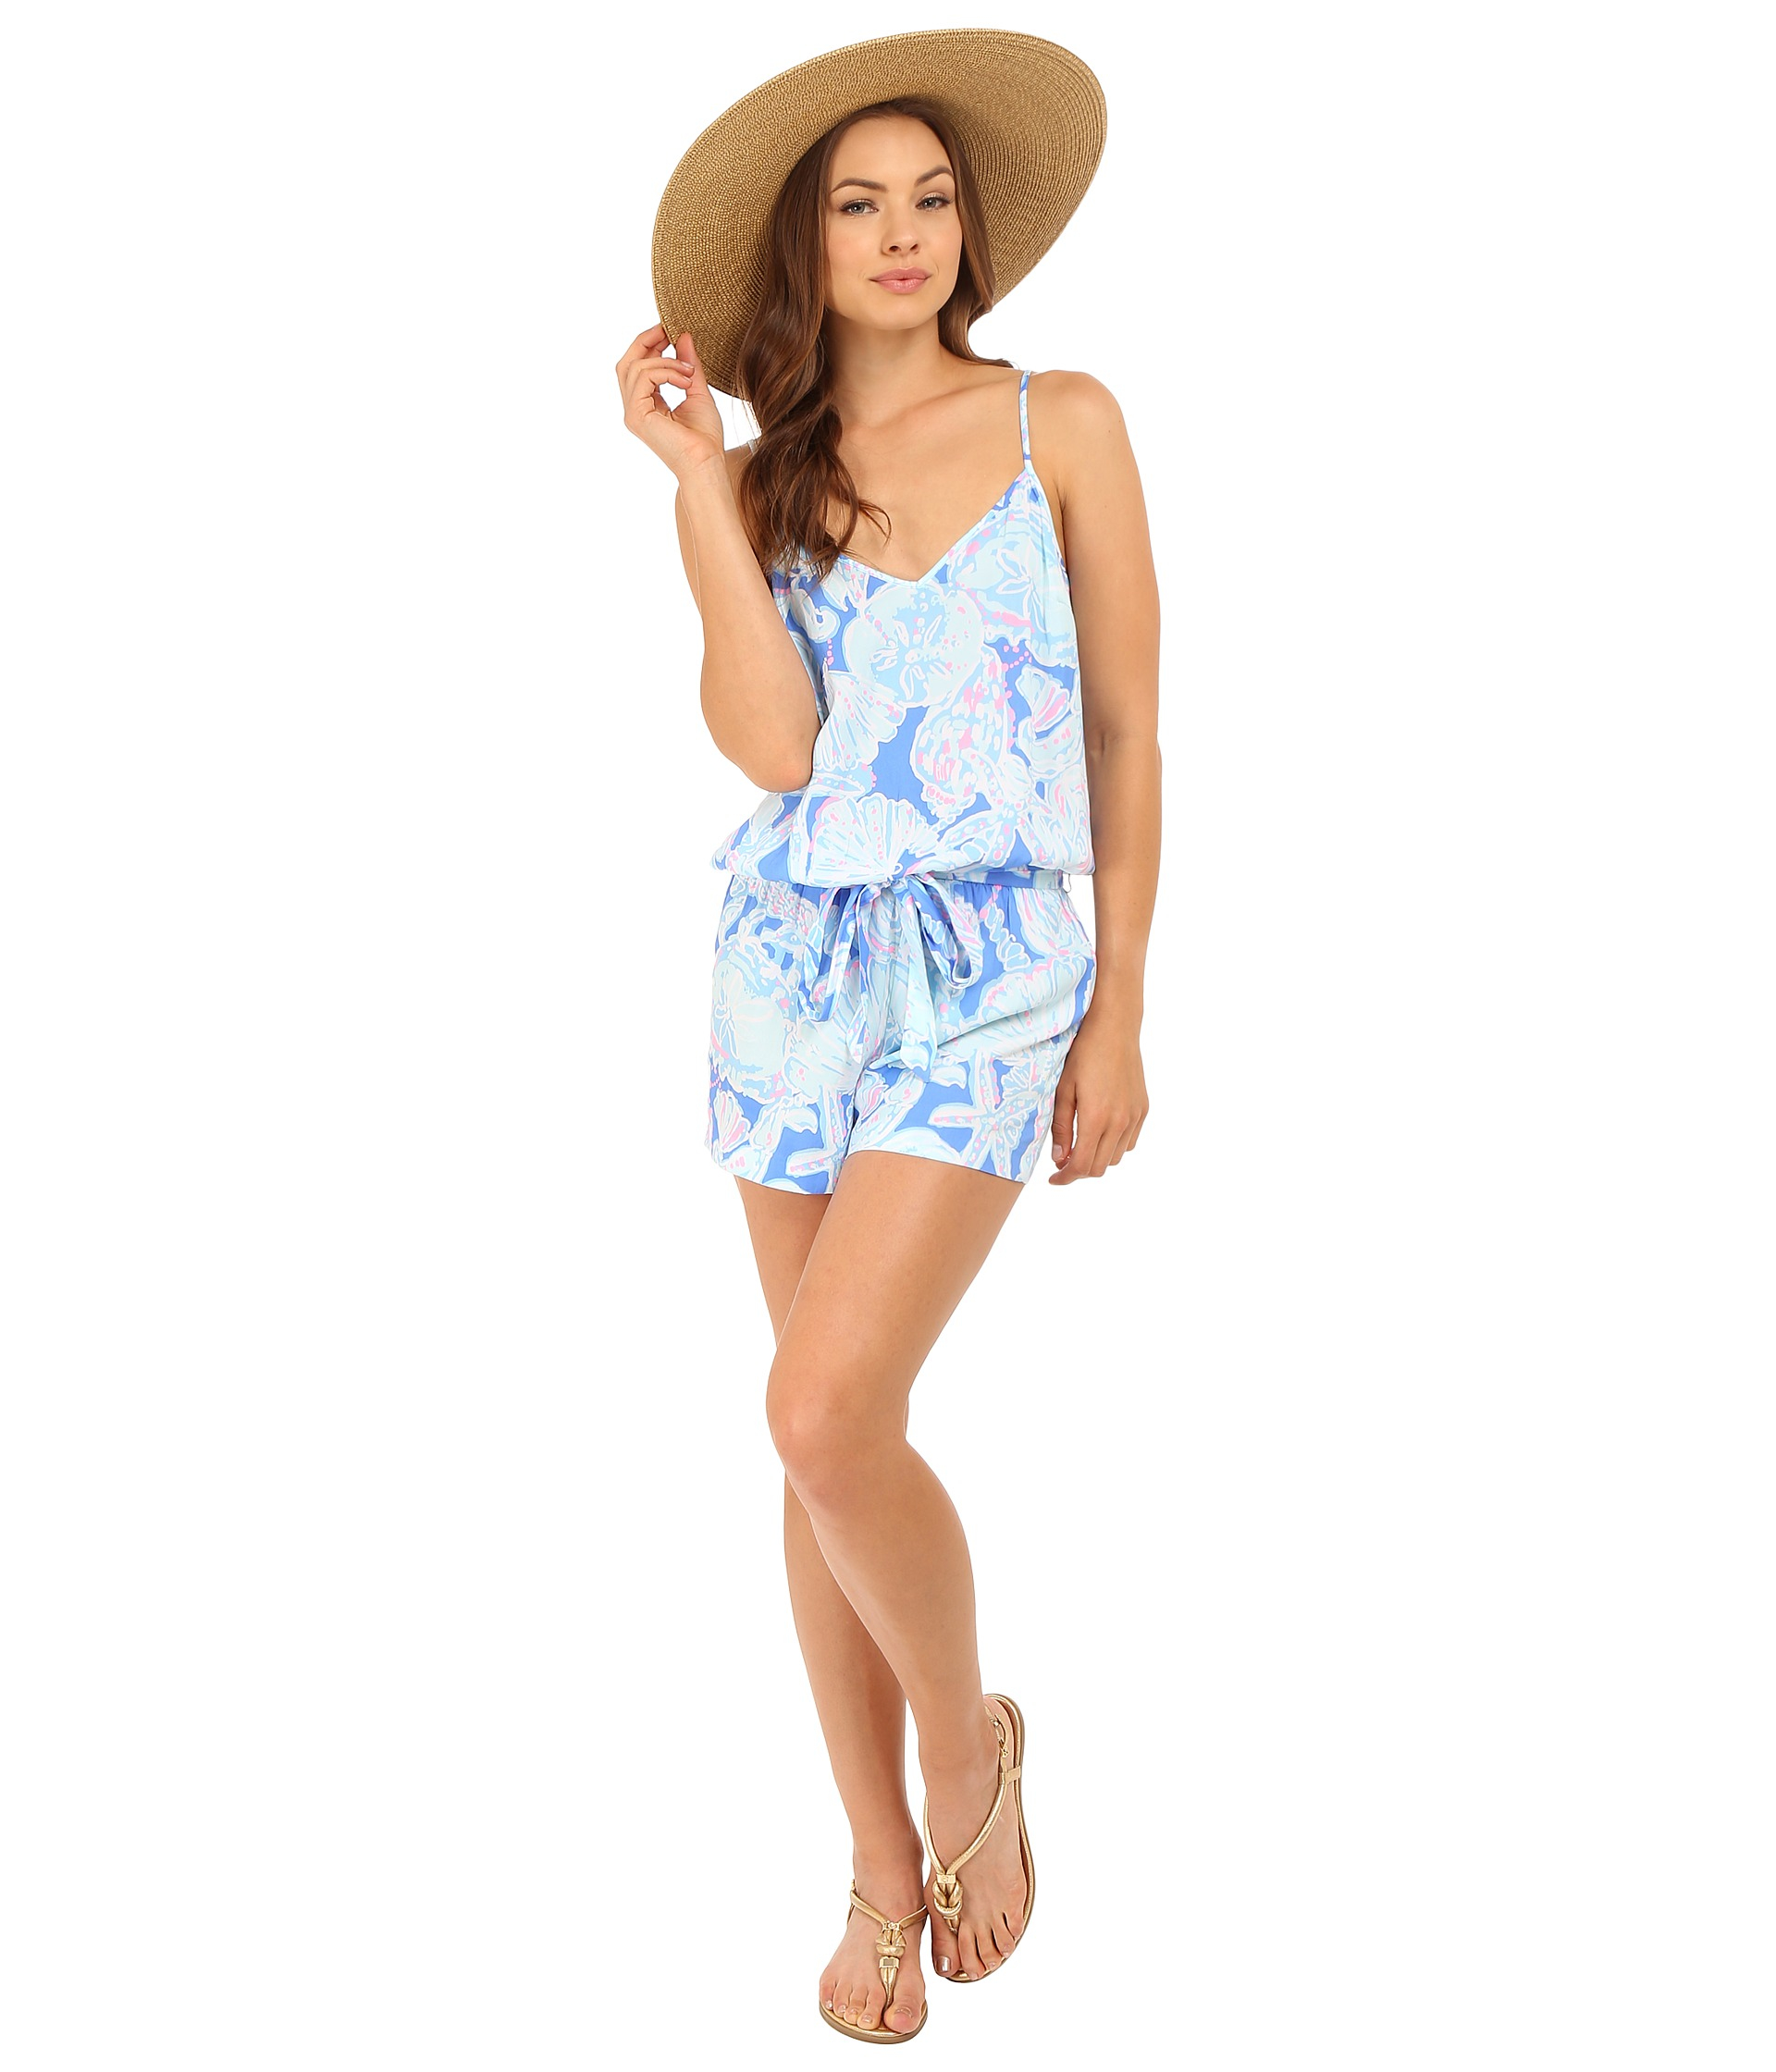 ec7cb7399471 Lyst - Lilly Pulitzer Deanna Romper in Blue